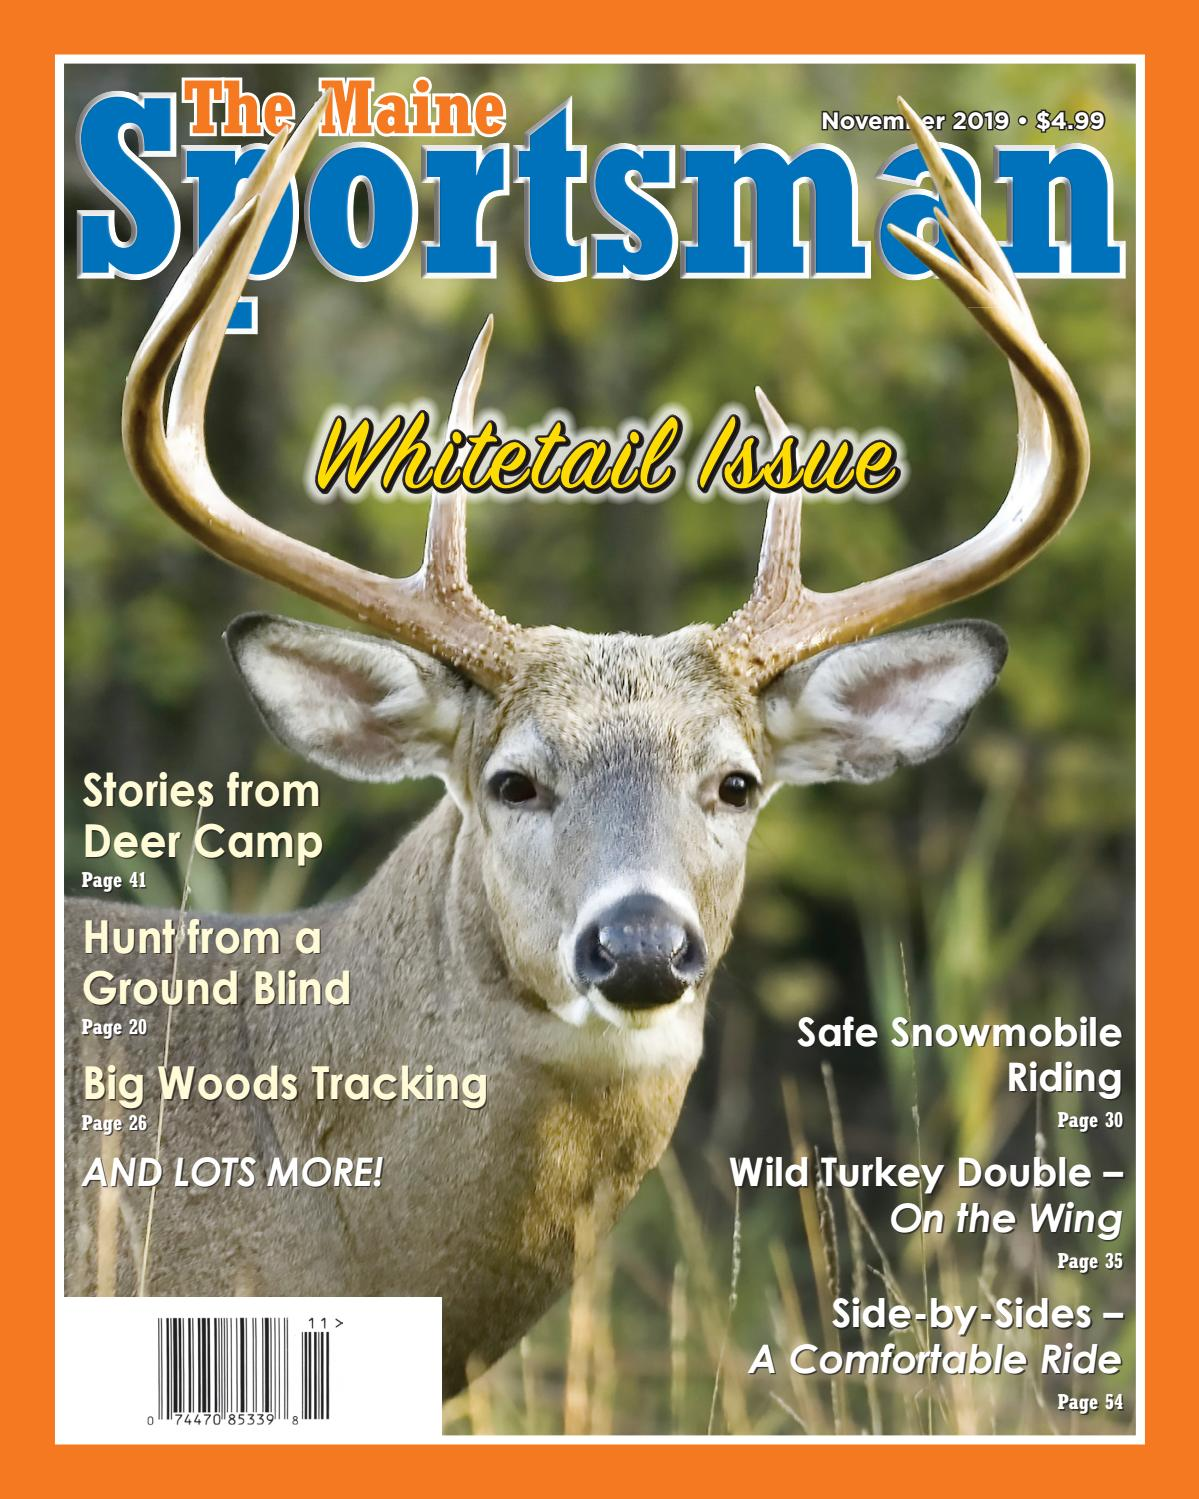 The Maine Sportsman - November 2019 Digital Edition by The Maine Sportsman  - Digital Edition - issuu